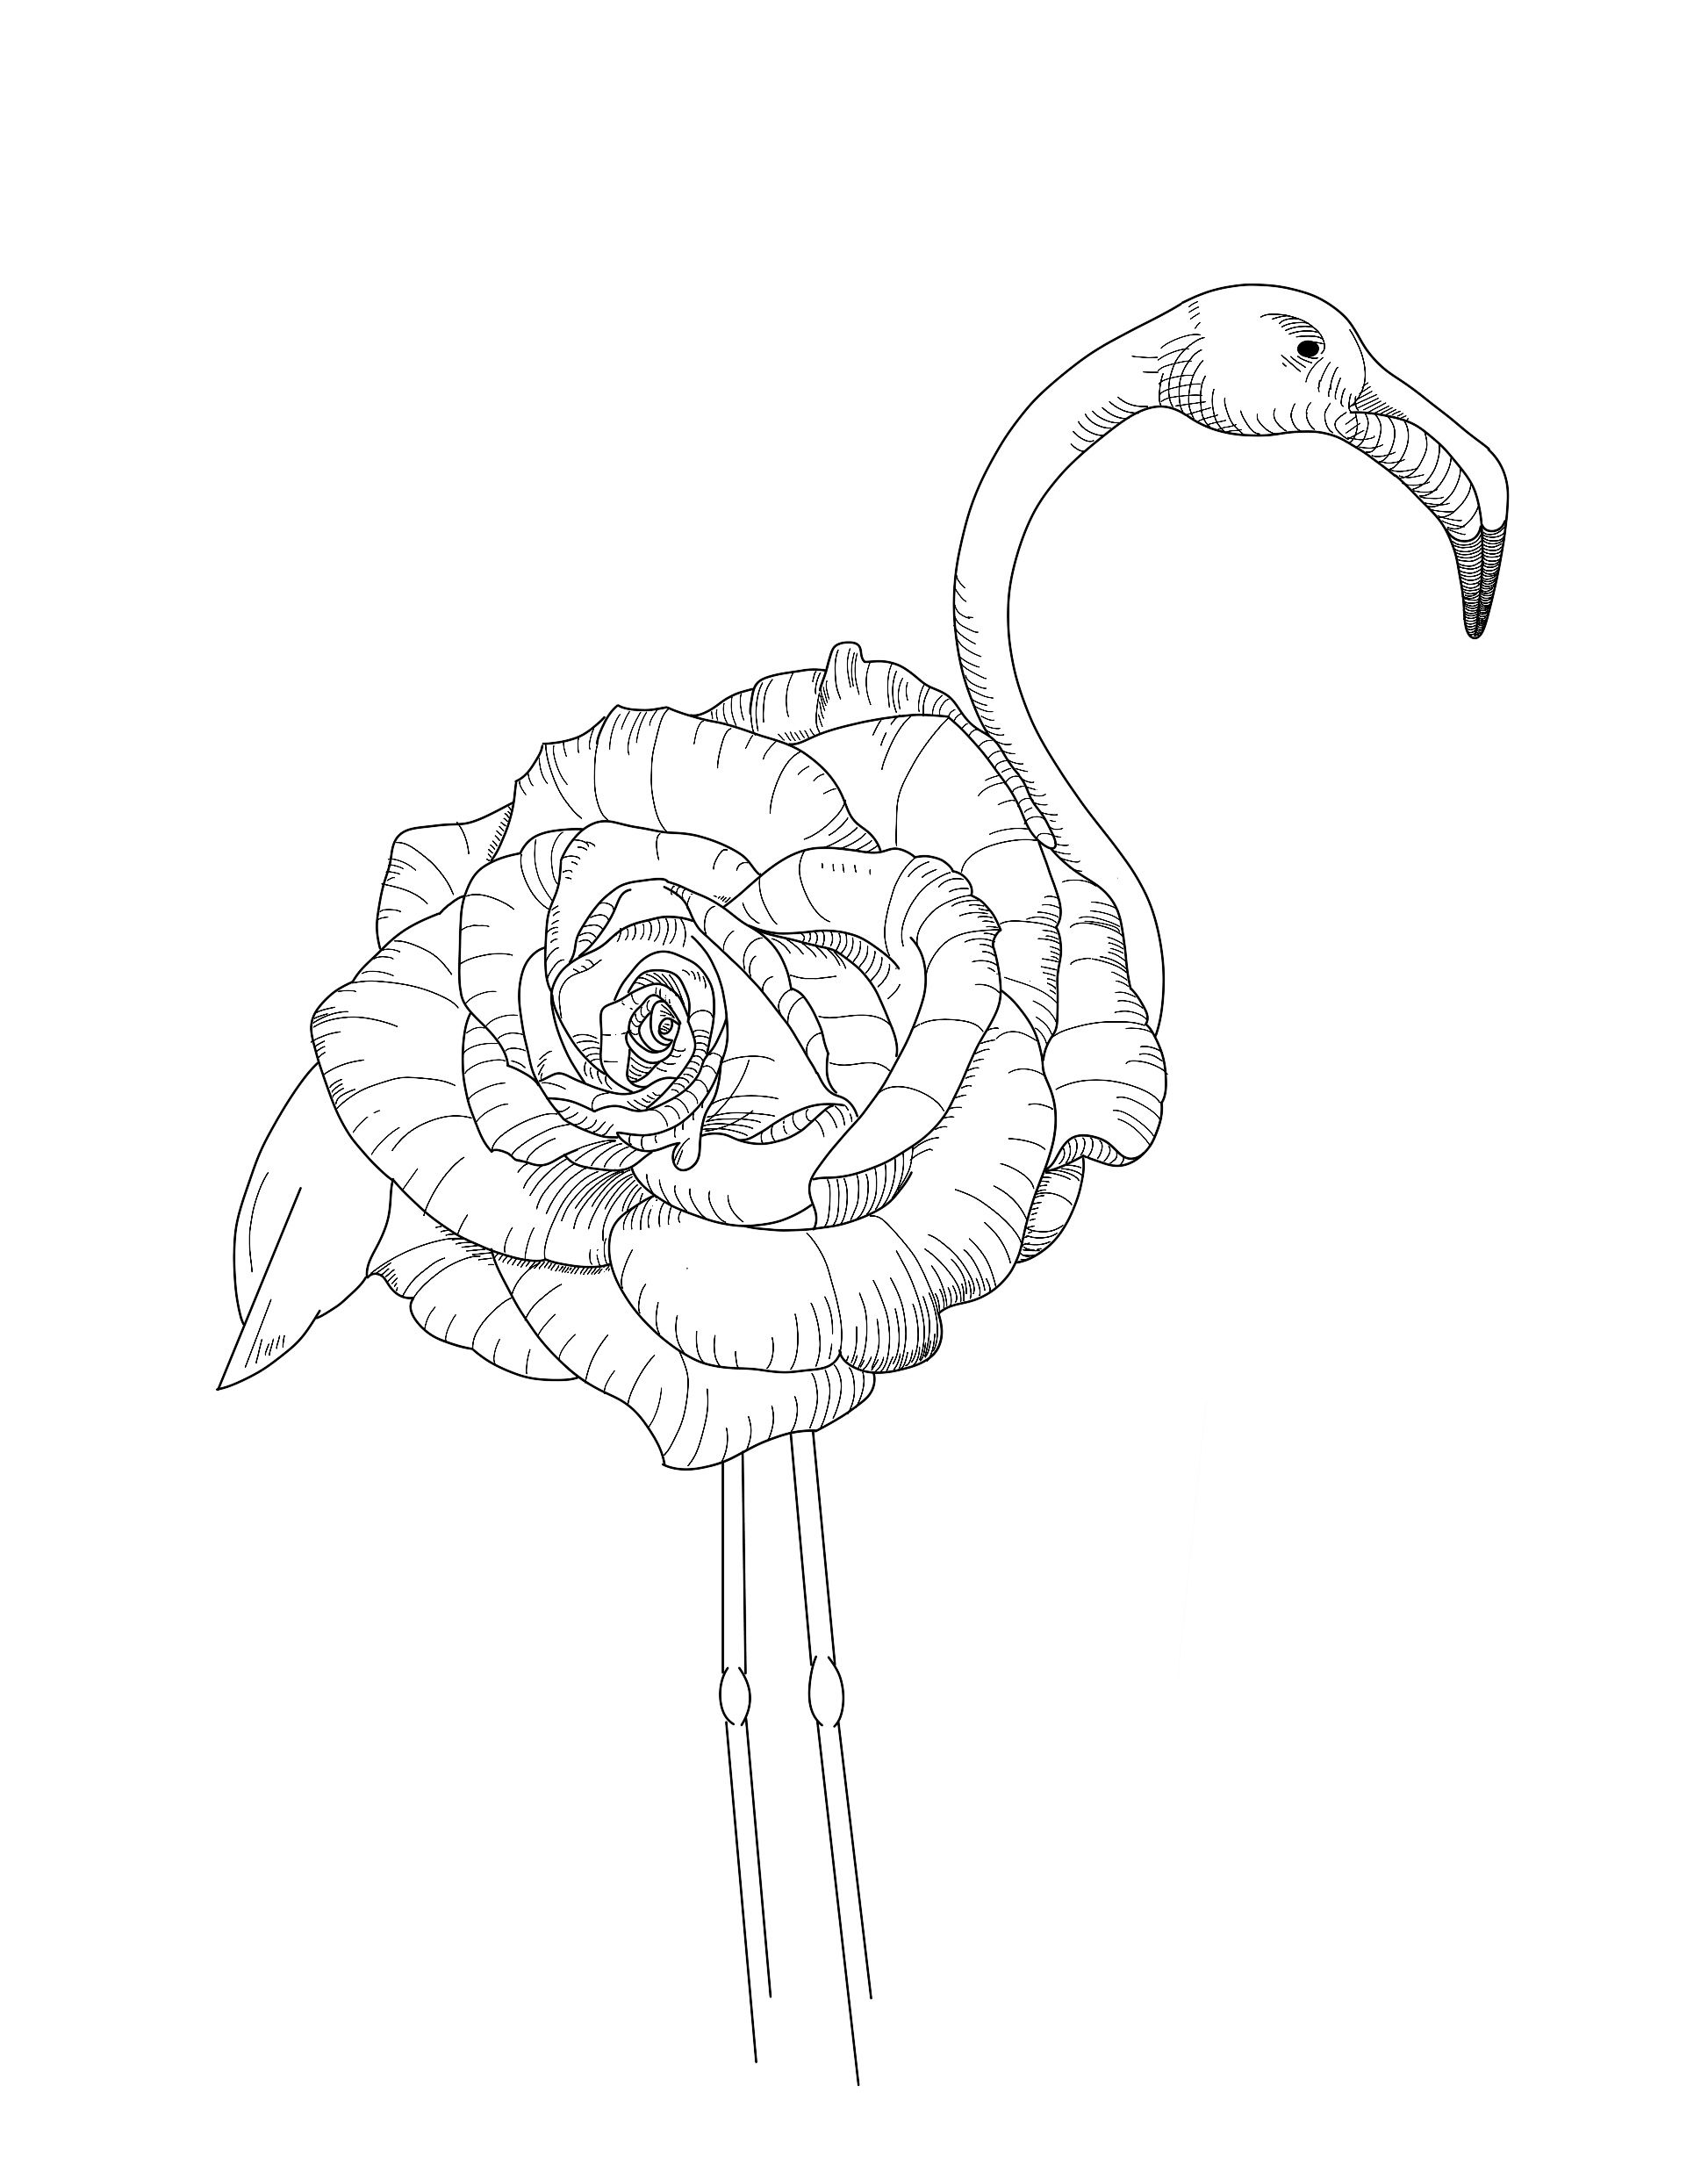 Flower X Flamingo Tattoo Design By Florian Fradet